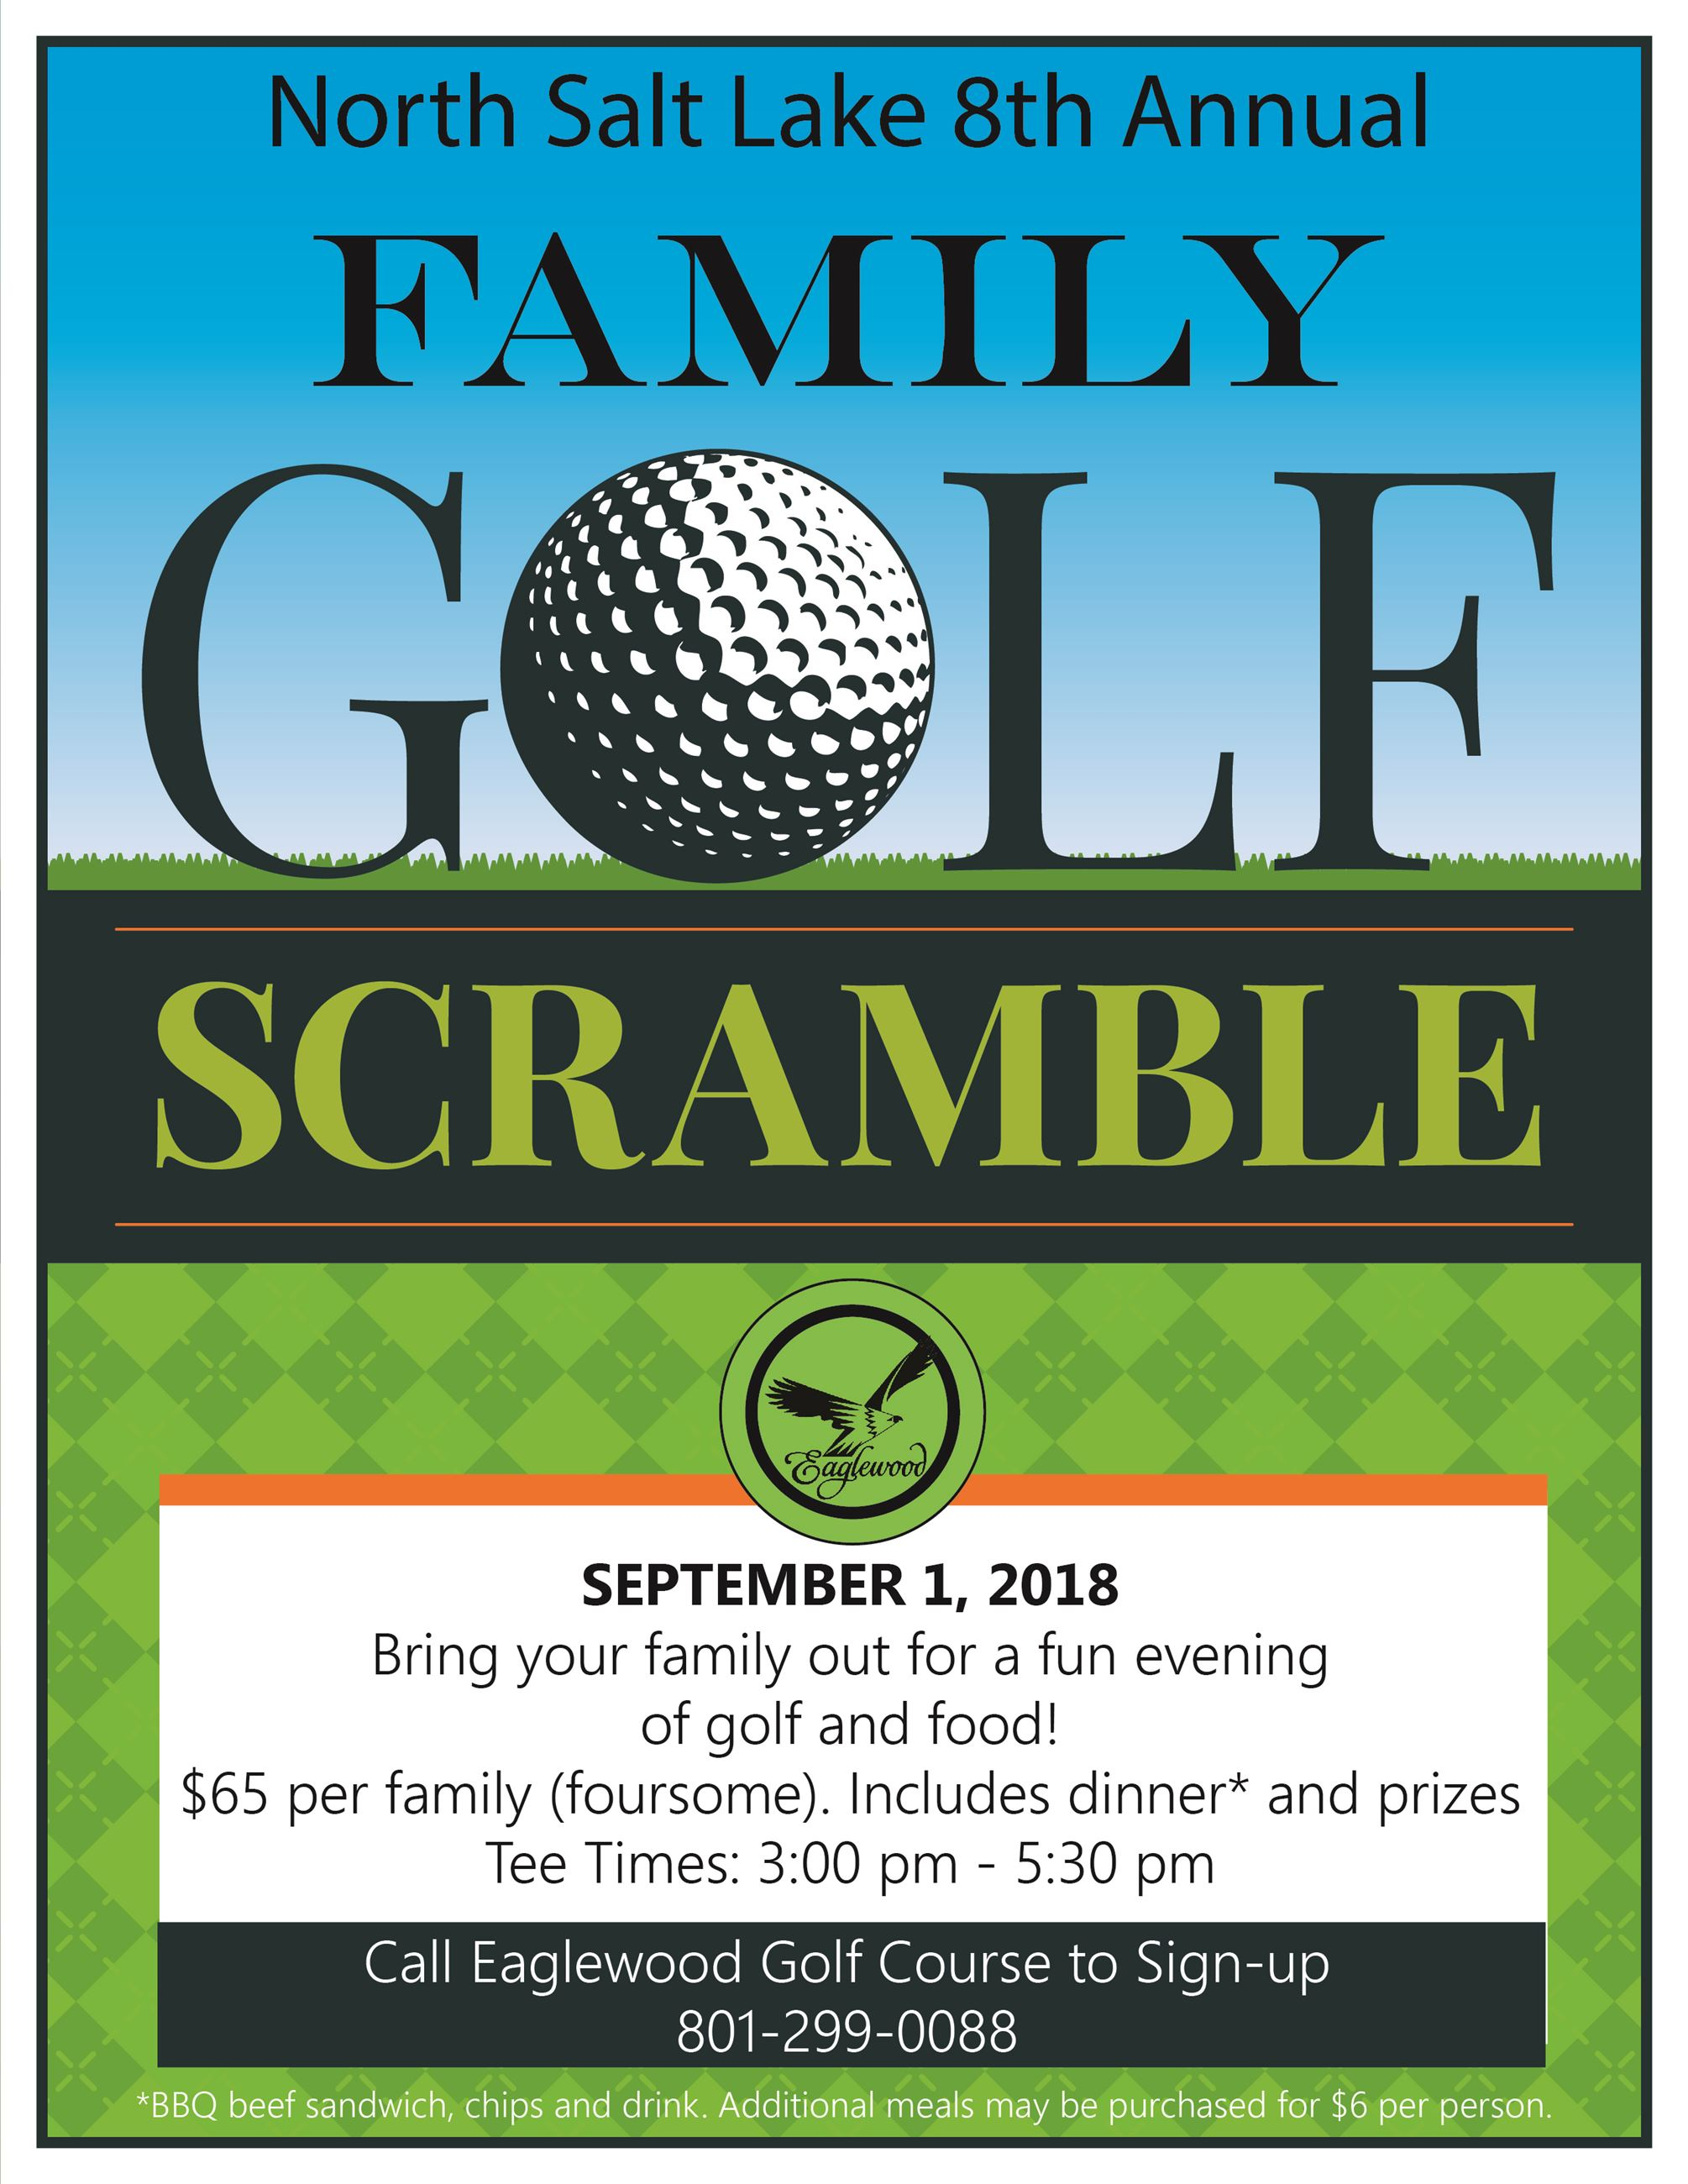 Family Golf Scramble flyer 2018 ldh 2-01